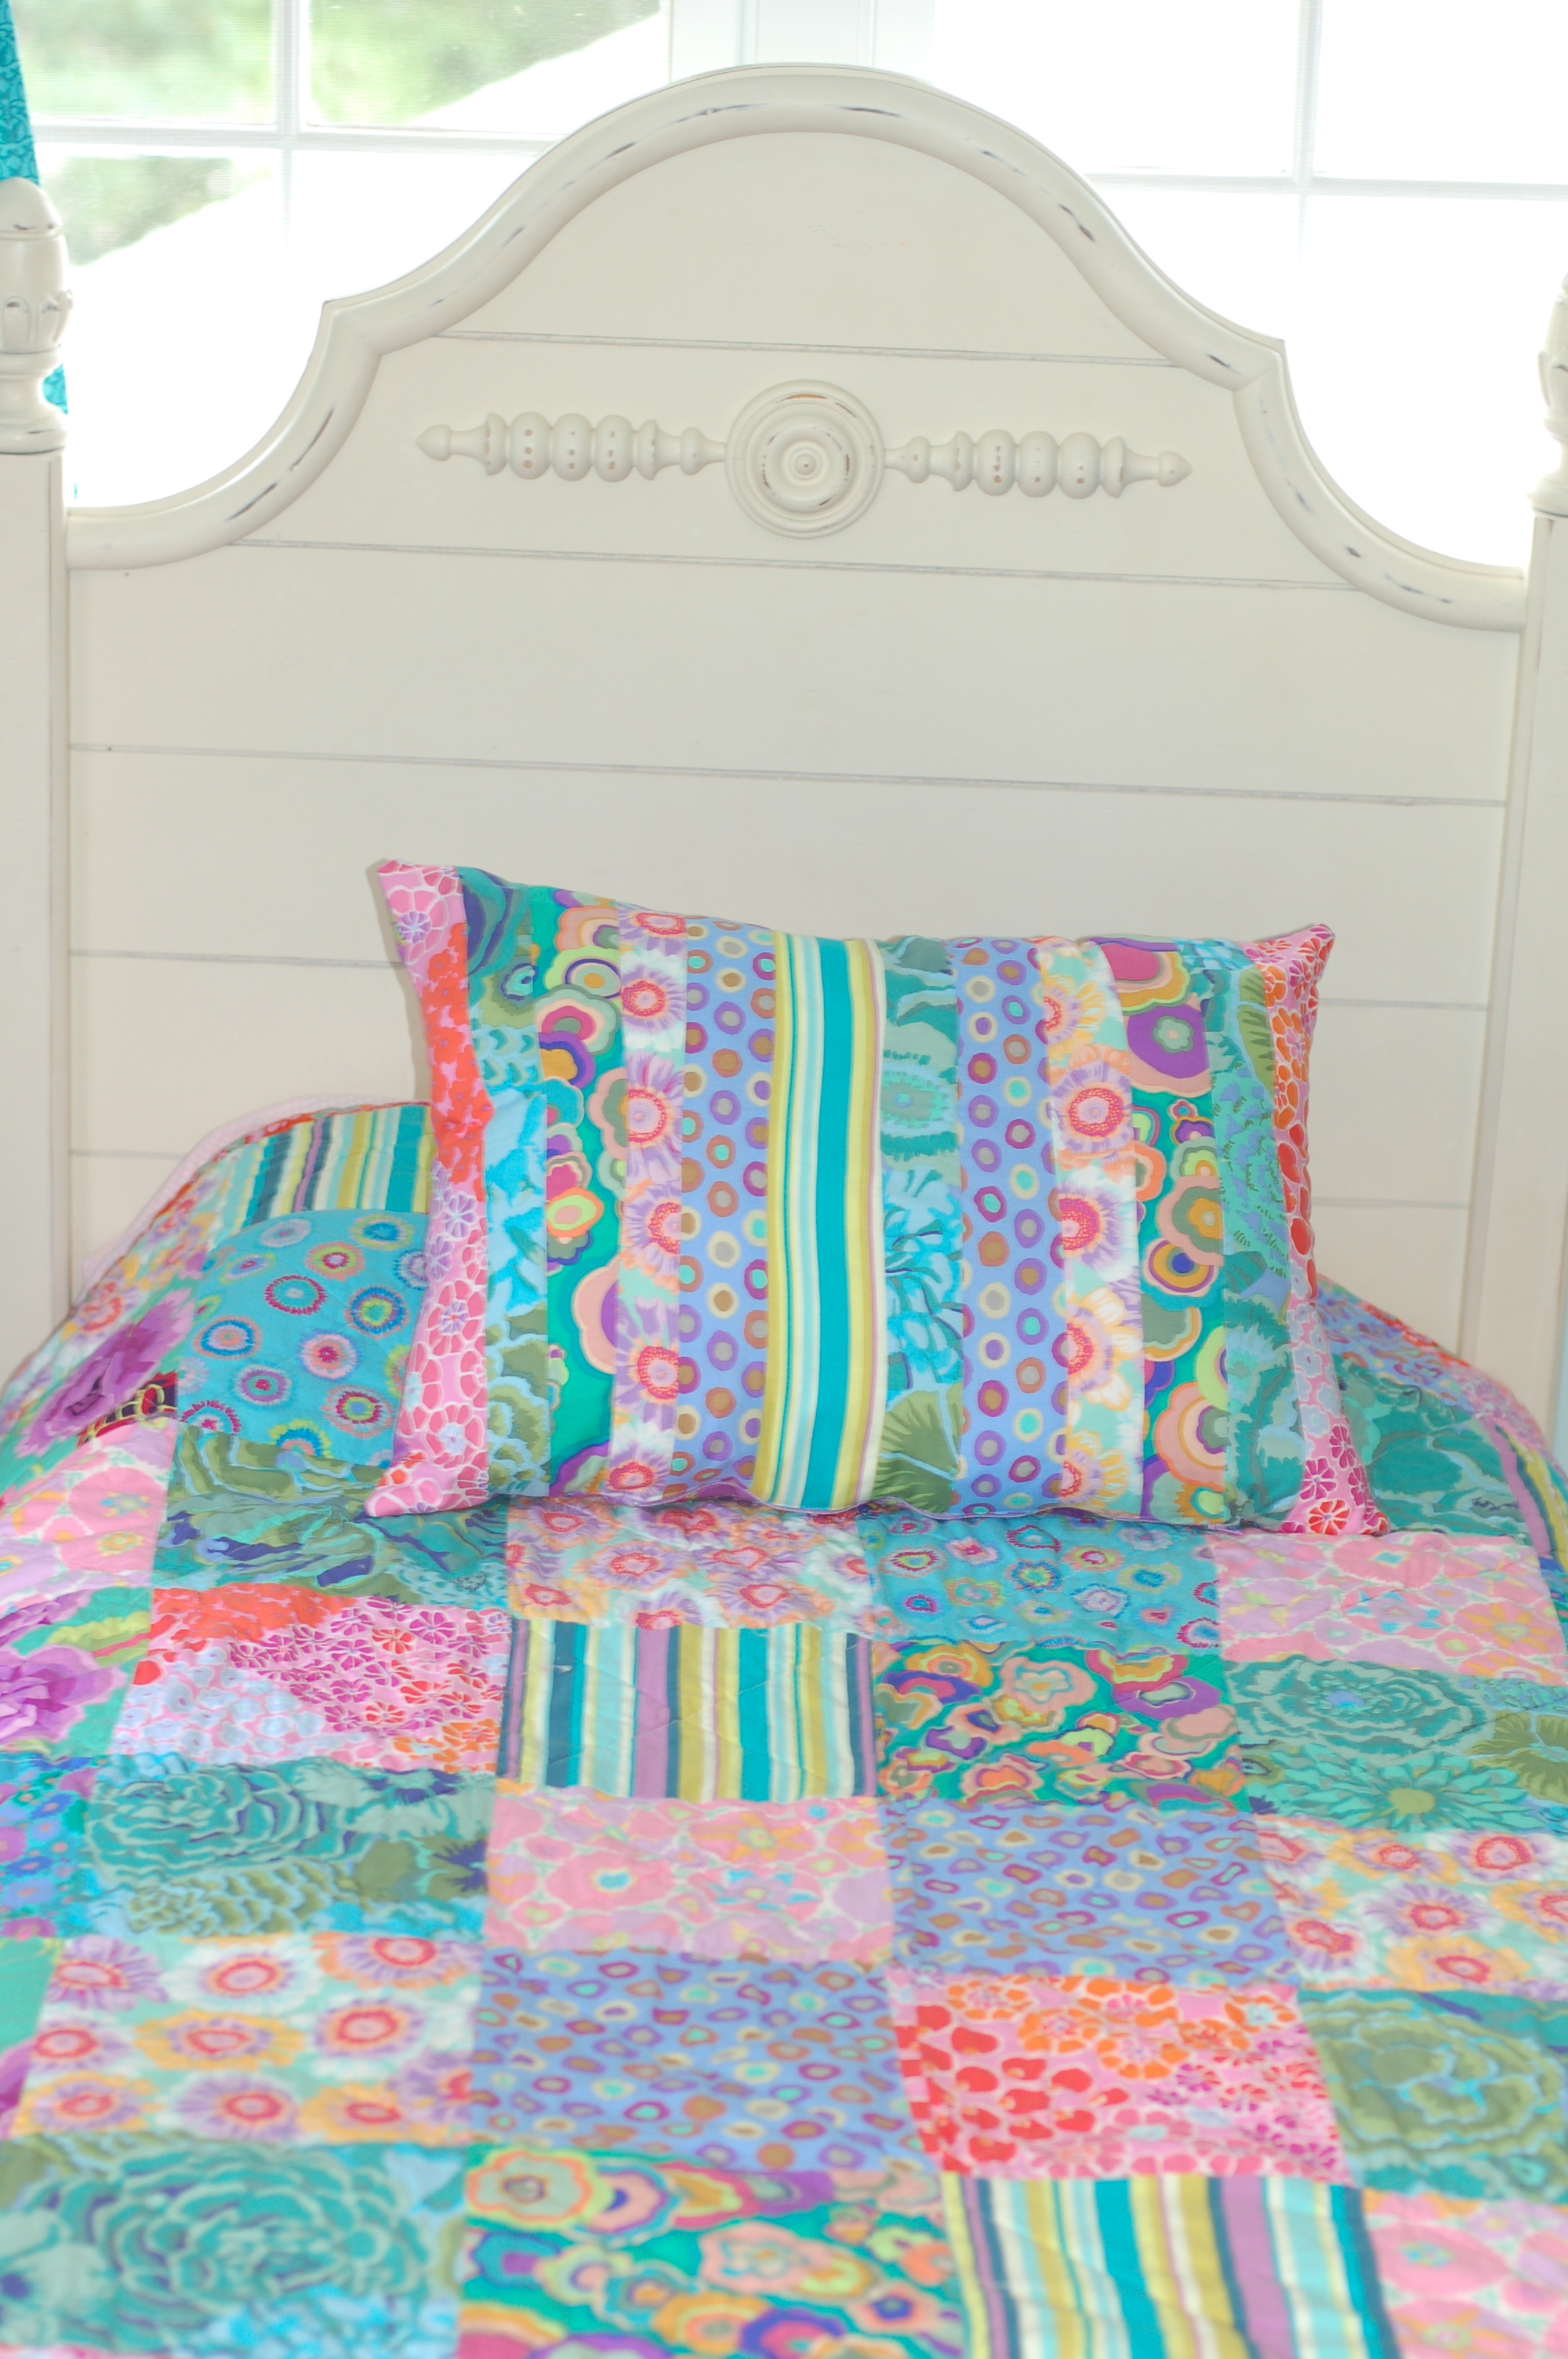 Diy Comforter Featuring Kaffe Fassett Fabrics Simply Natural Mom